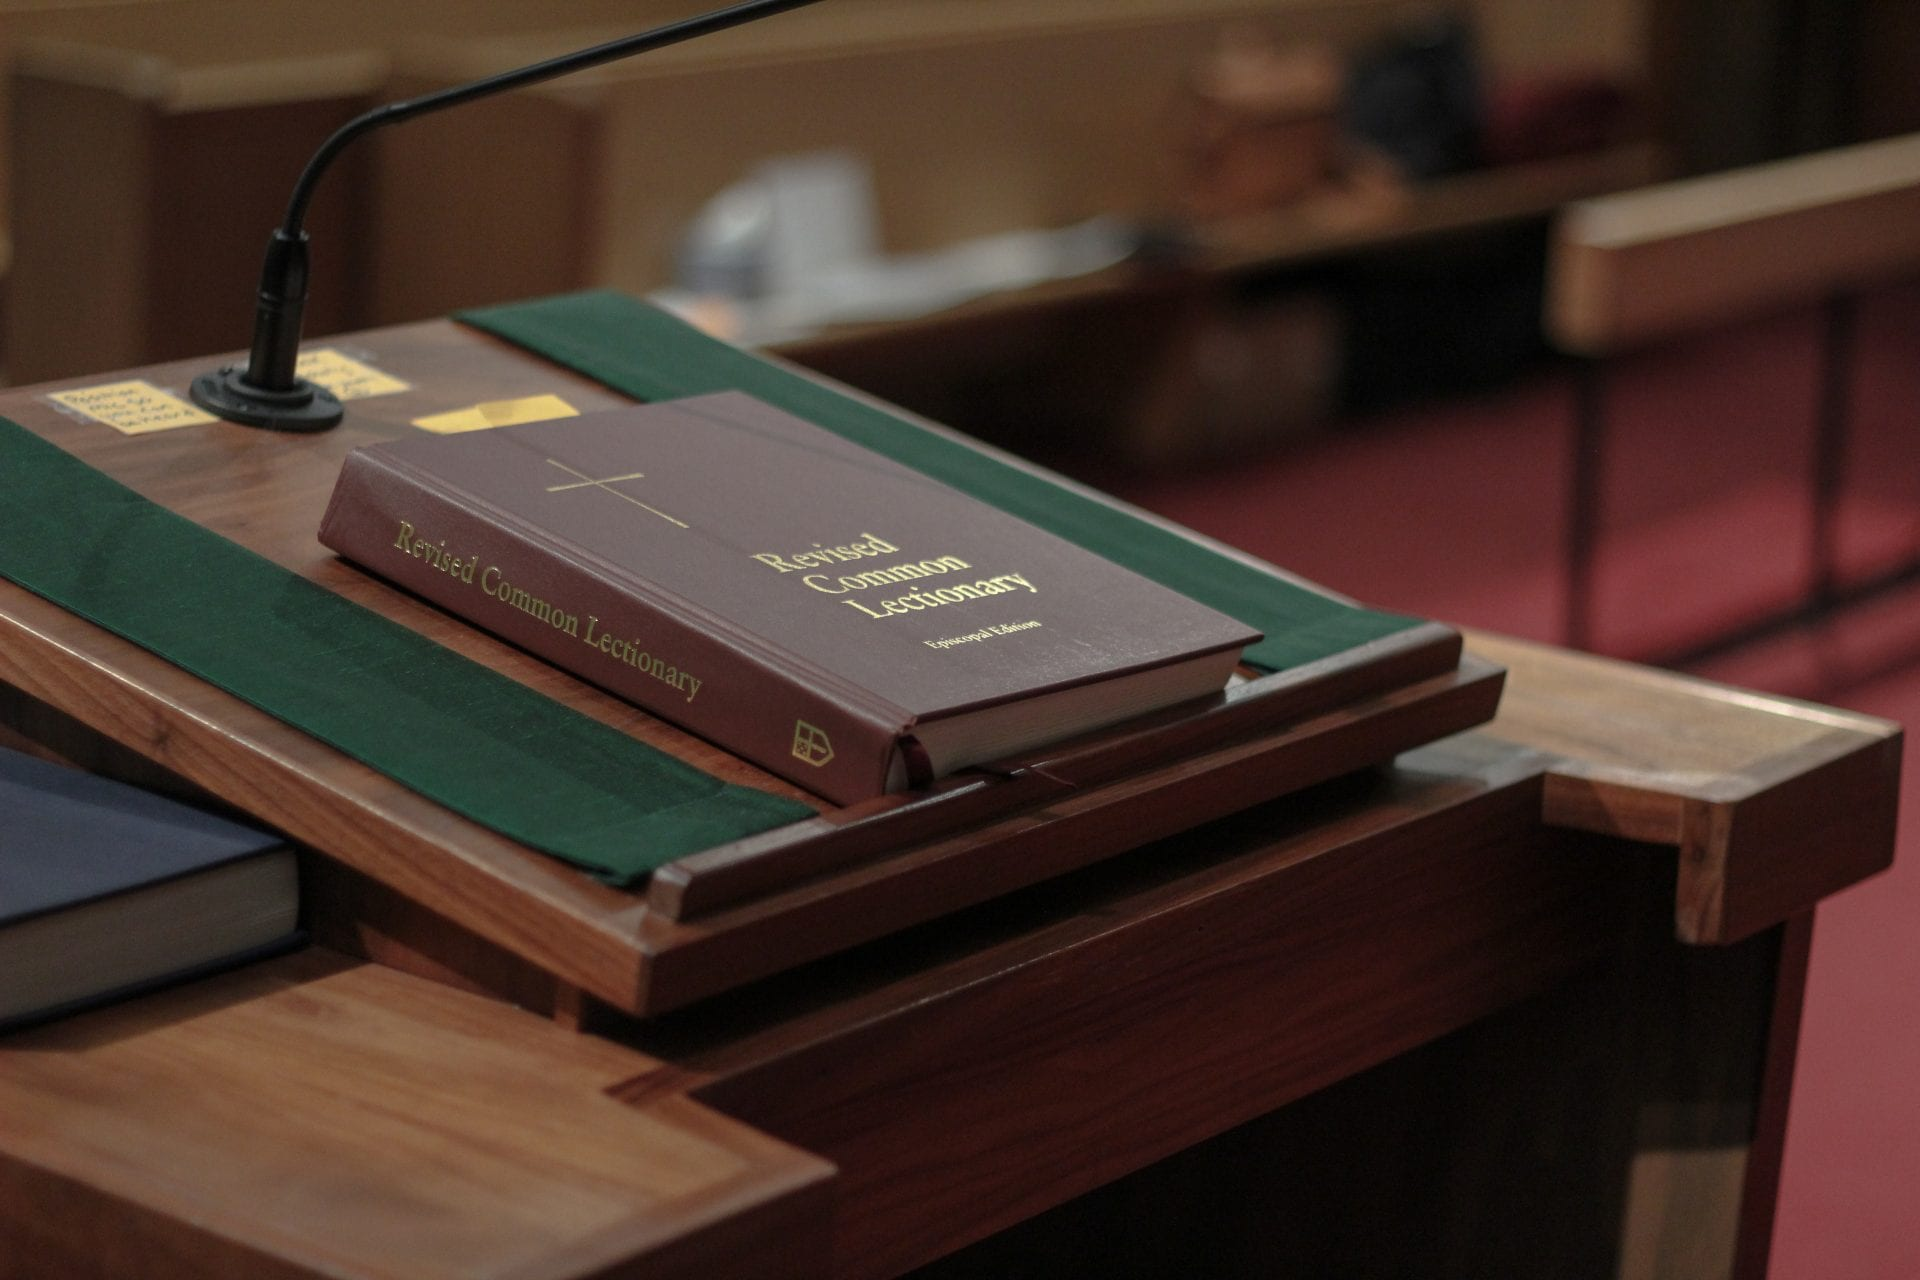 Book on lectern